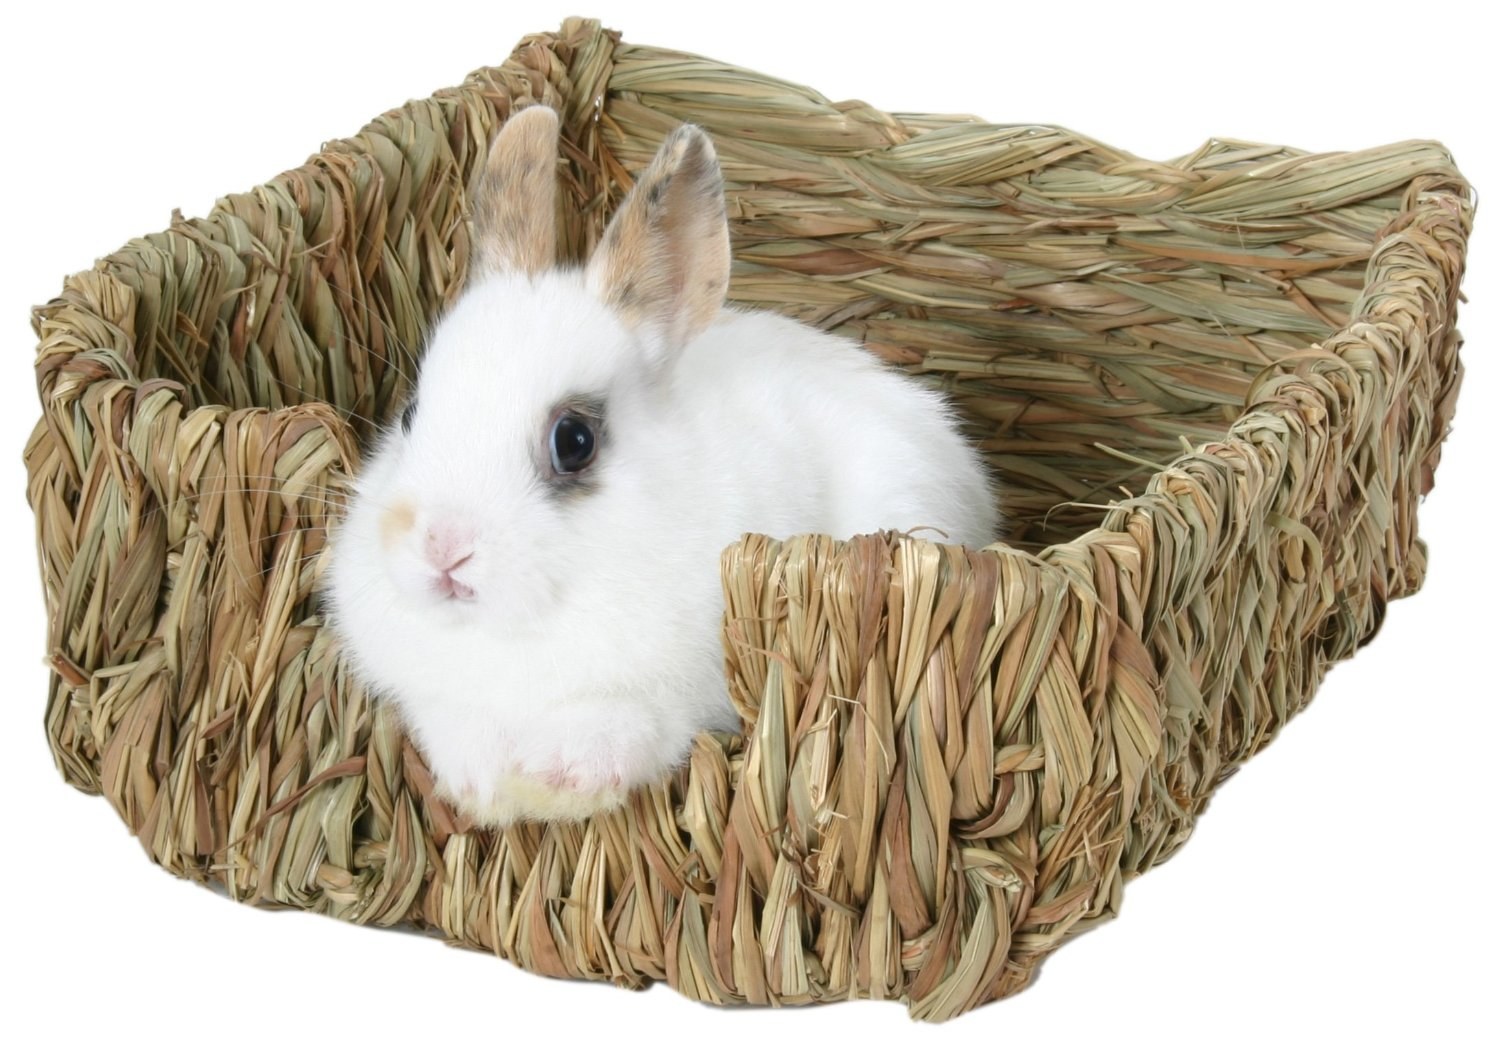 Woven grass bed for dwarf rabbits